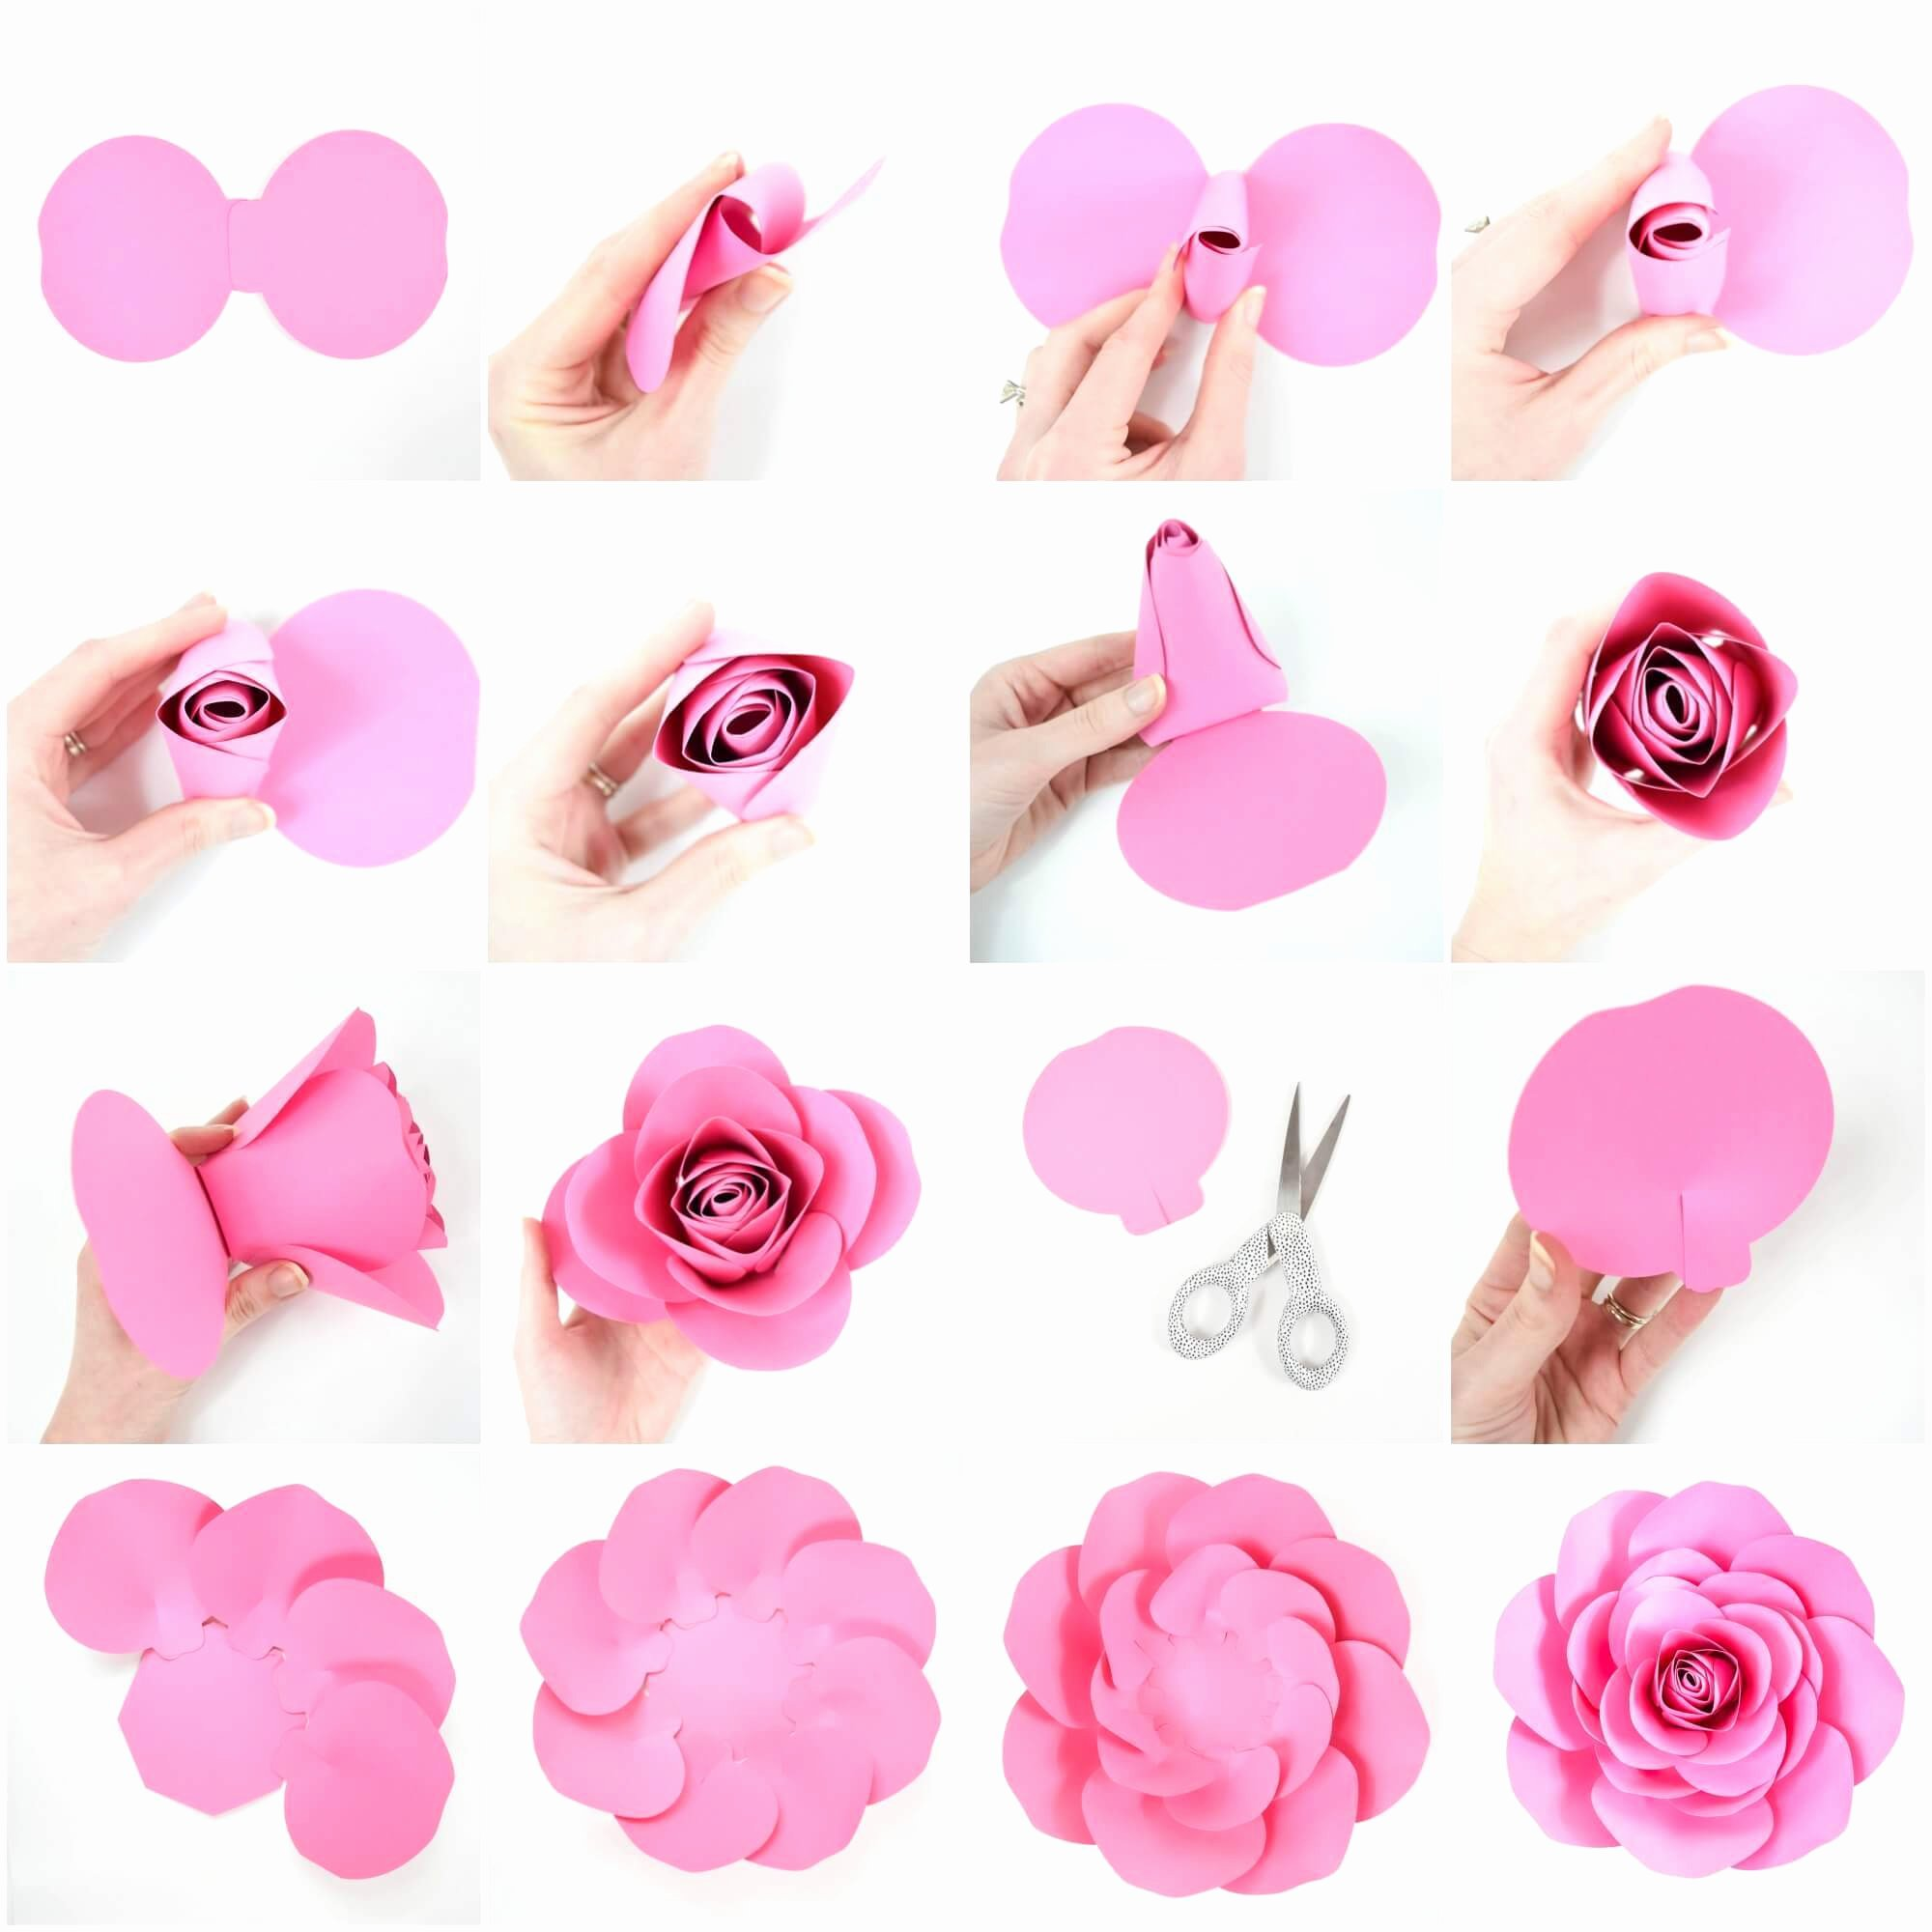 Large Rose Paper Flower Template Elegant Free Paper Rose Template Diy Camellia Rose Tutorial